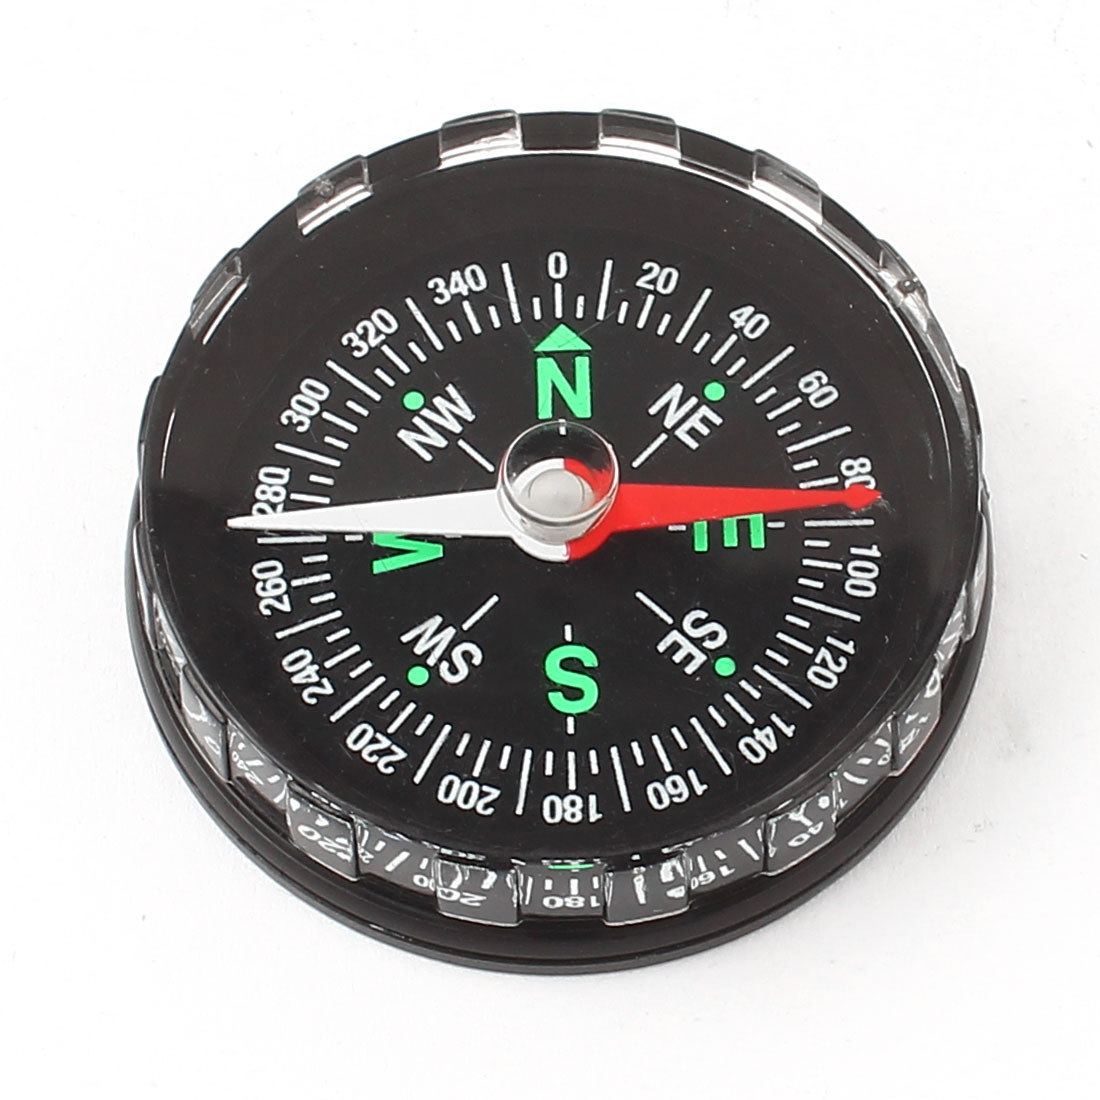 "1.8"" Dia Round Dial Portable Sensitive Compass for Outdoor Hiking Camping"